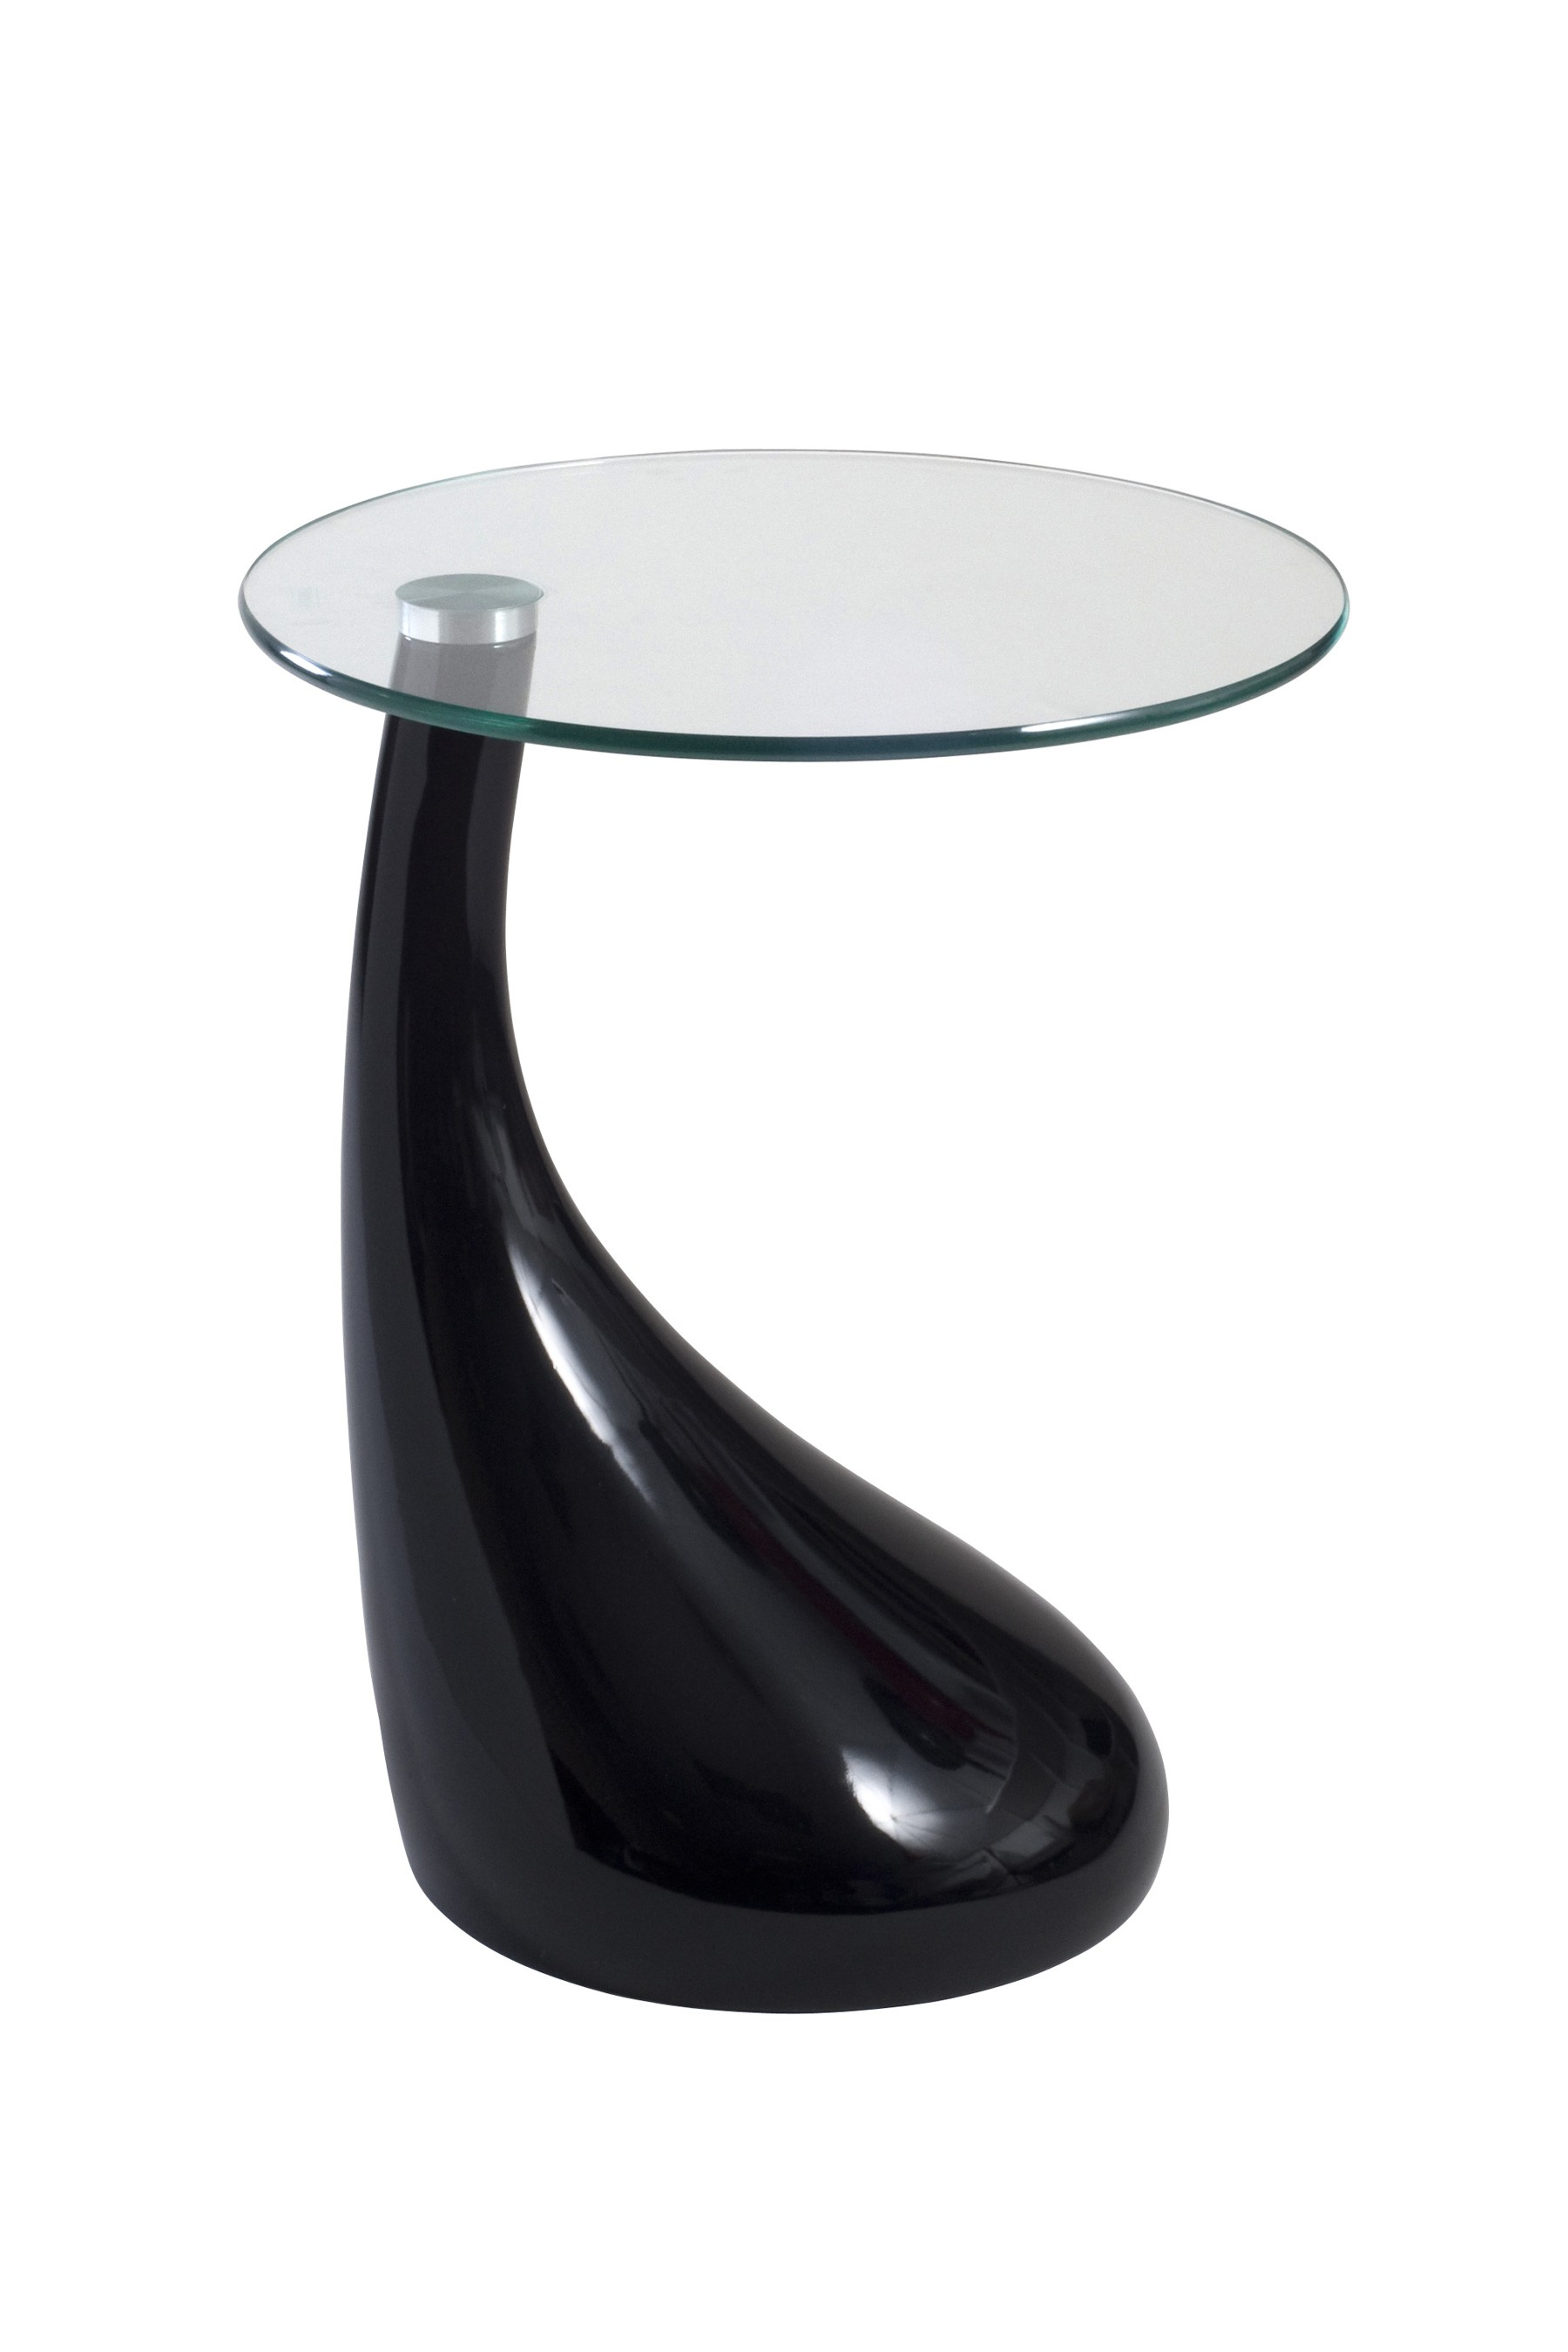 best small black accent table with round glass side curving acrylic pedestal base foyer furniture stained buffet lamps home wall decor west elm coffee desk bar height set backyard